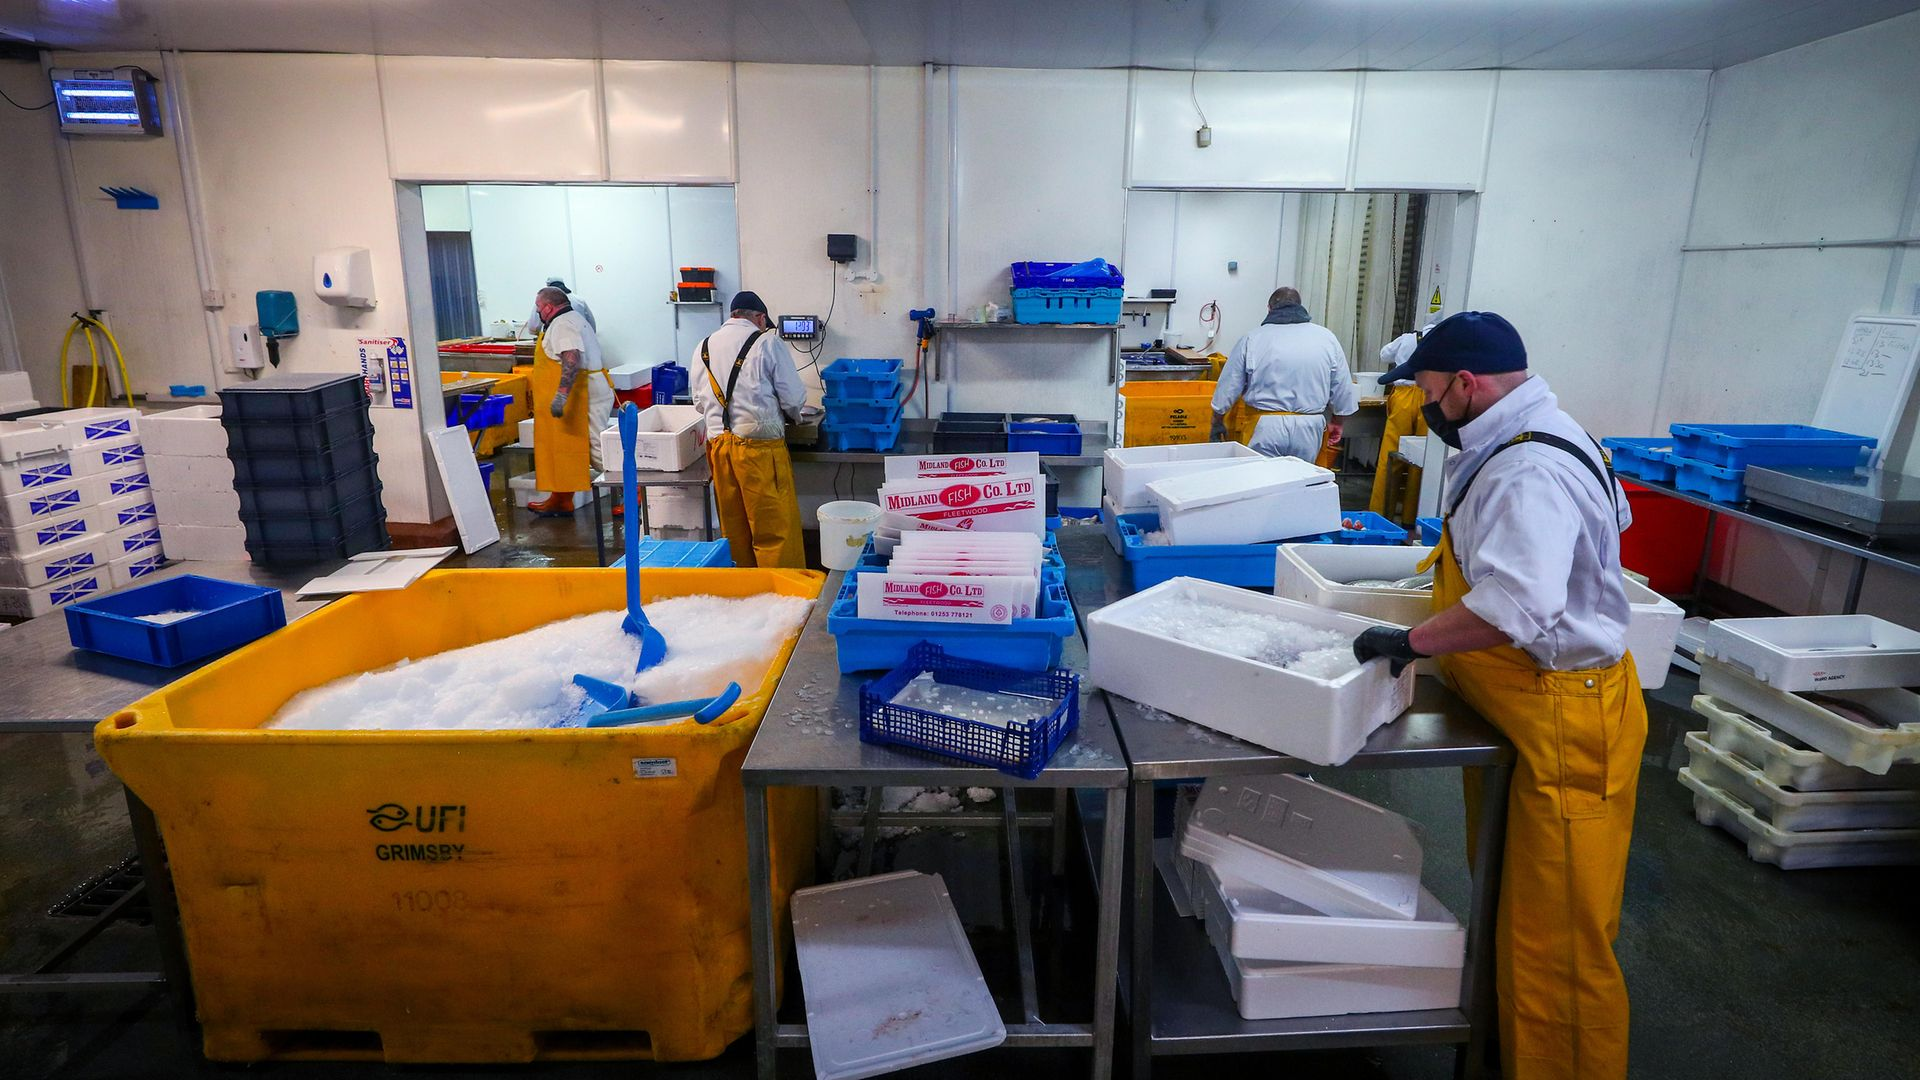 Staff at Midland Fish in Fleetwood prepare fish for sale at the docks in Fleetwood, Lancashire - Credit: PA